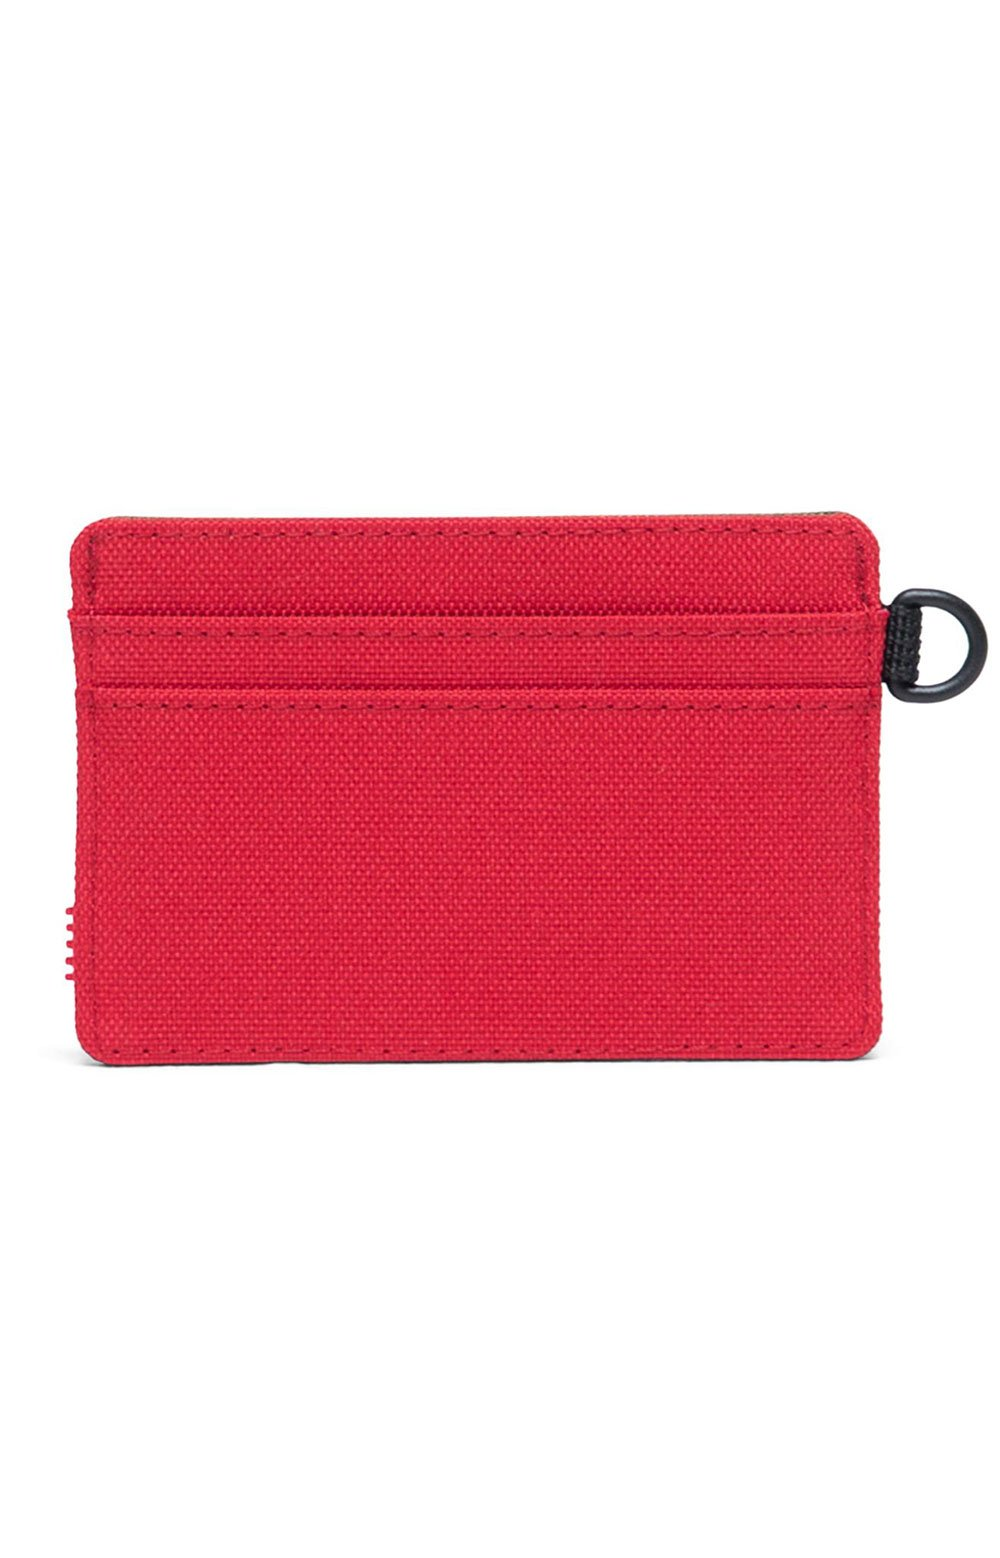 Charlie ID Wallet - Navy/Red/Woodland Camo 3